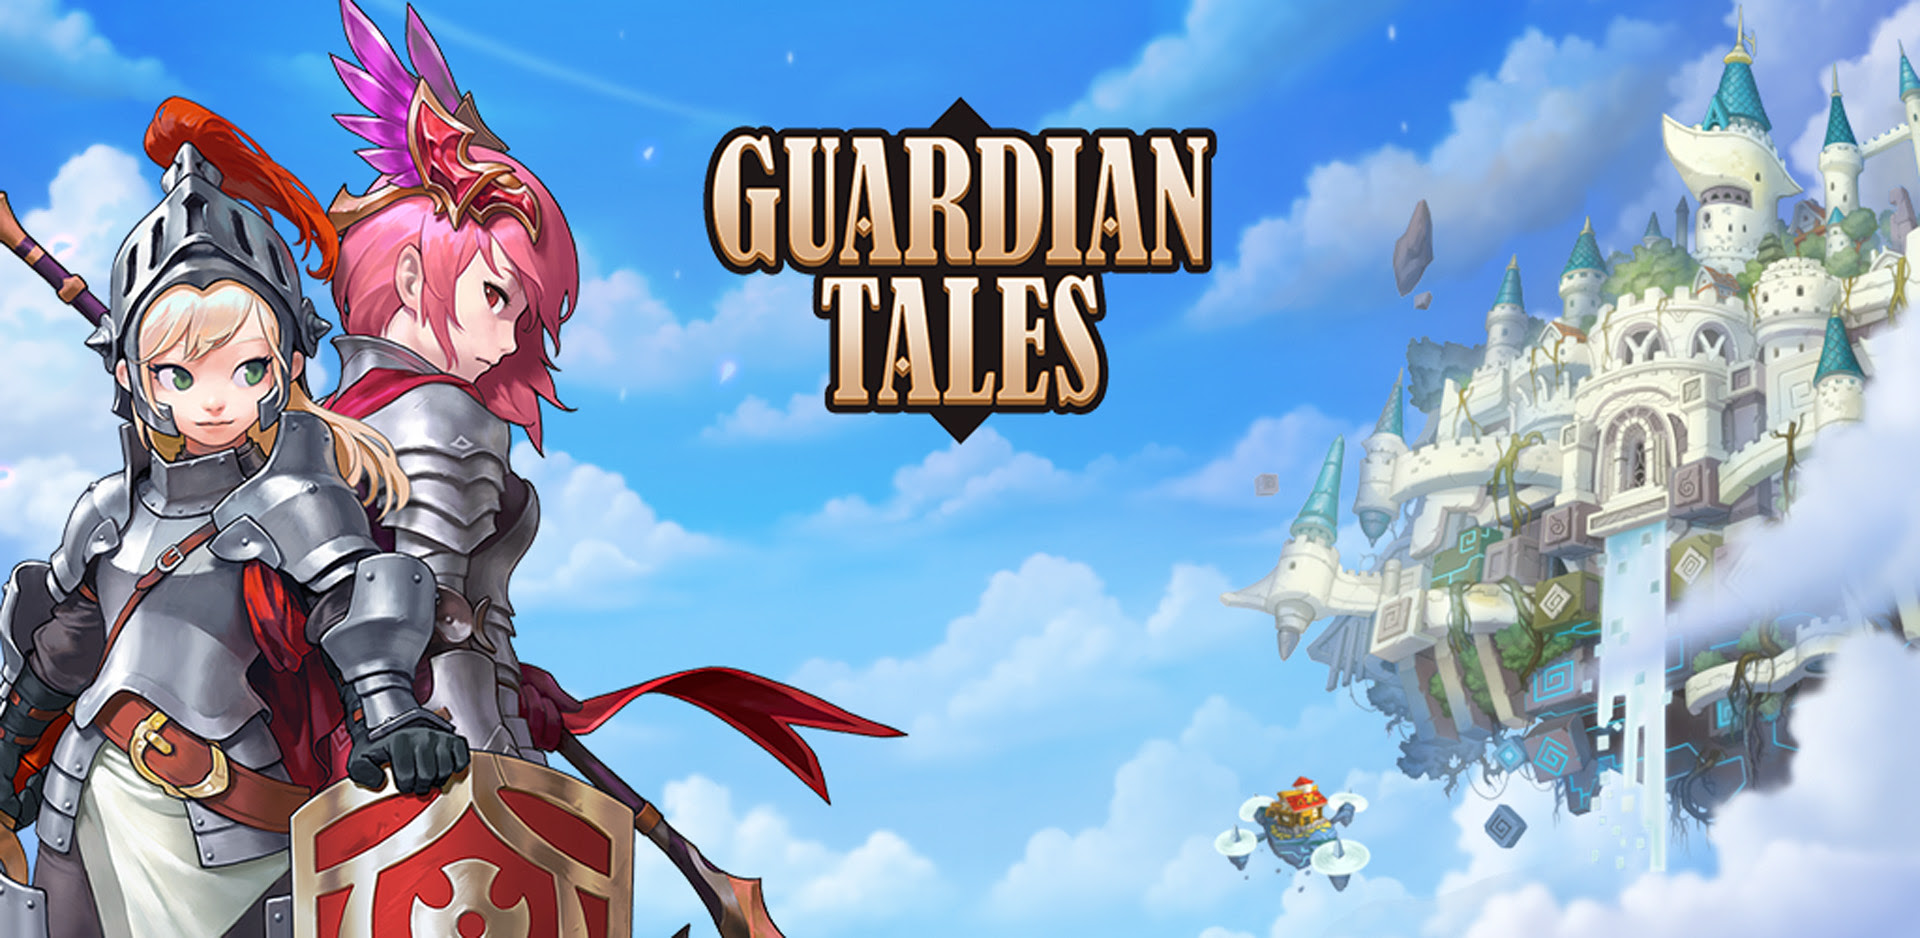 Guardian Tales: Kakao Games' Action Adventure Game Released